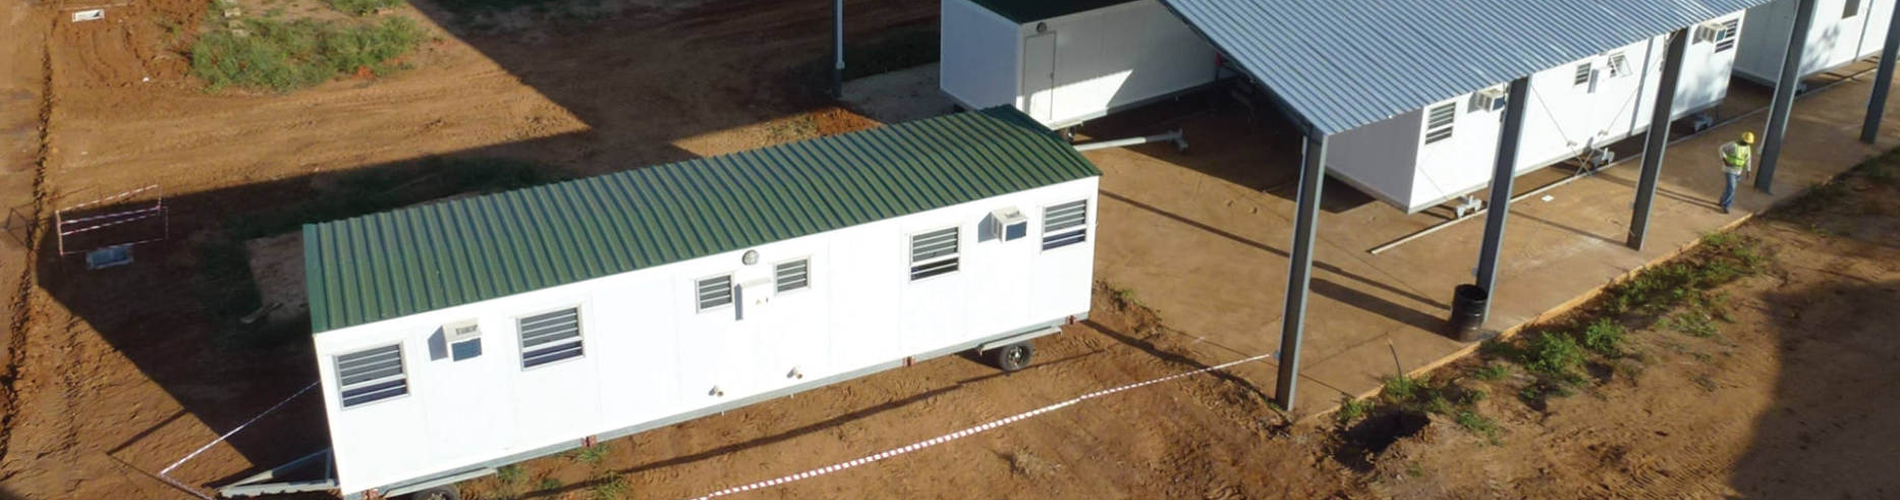 Single-wide mobile office for sale in south africa.